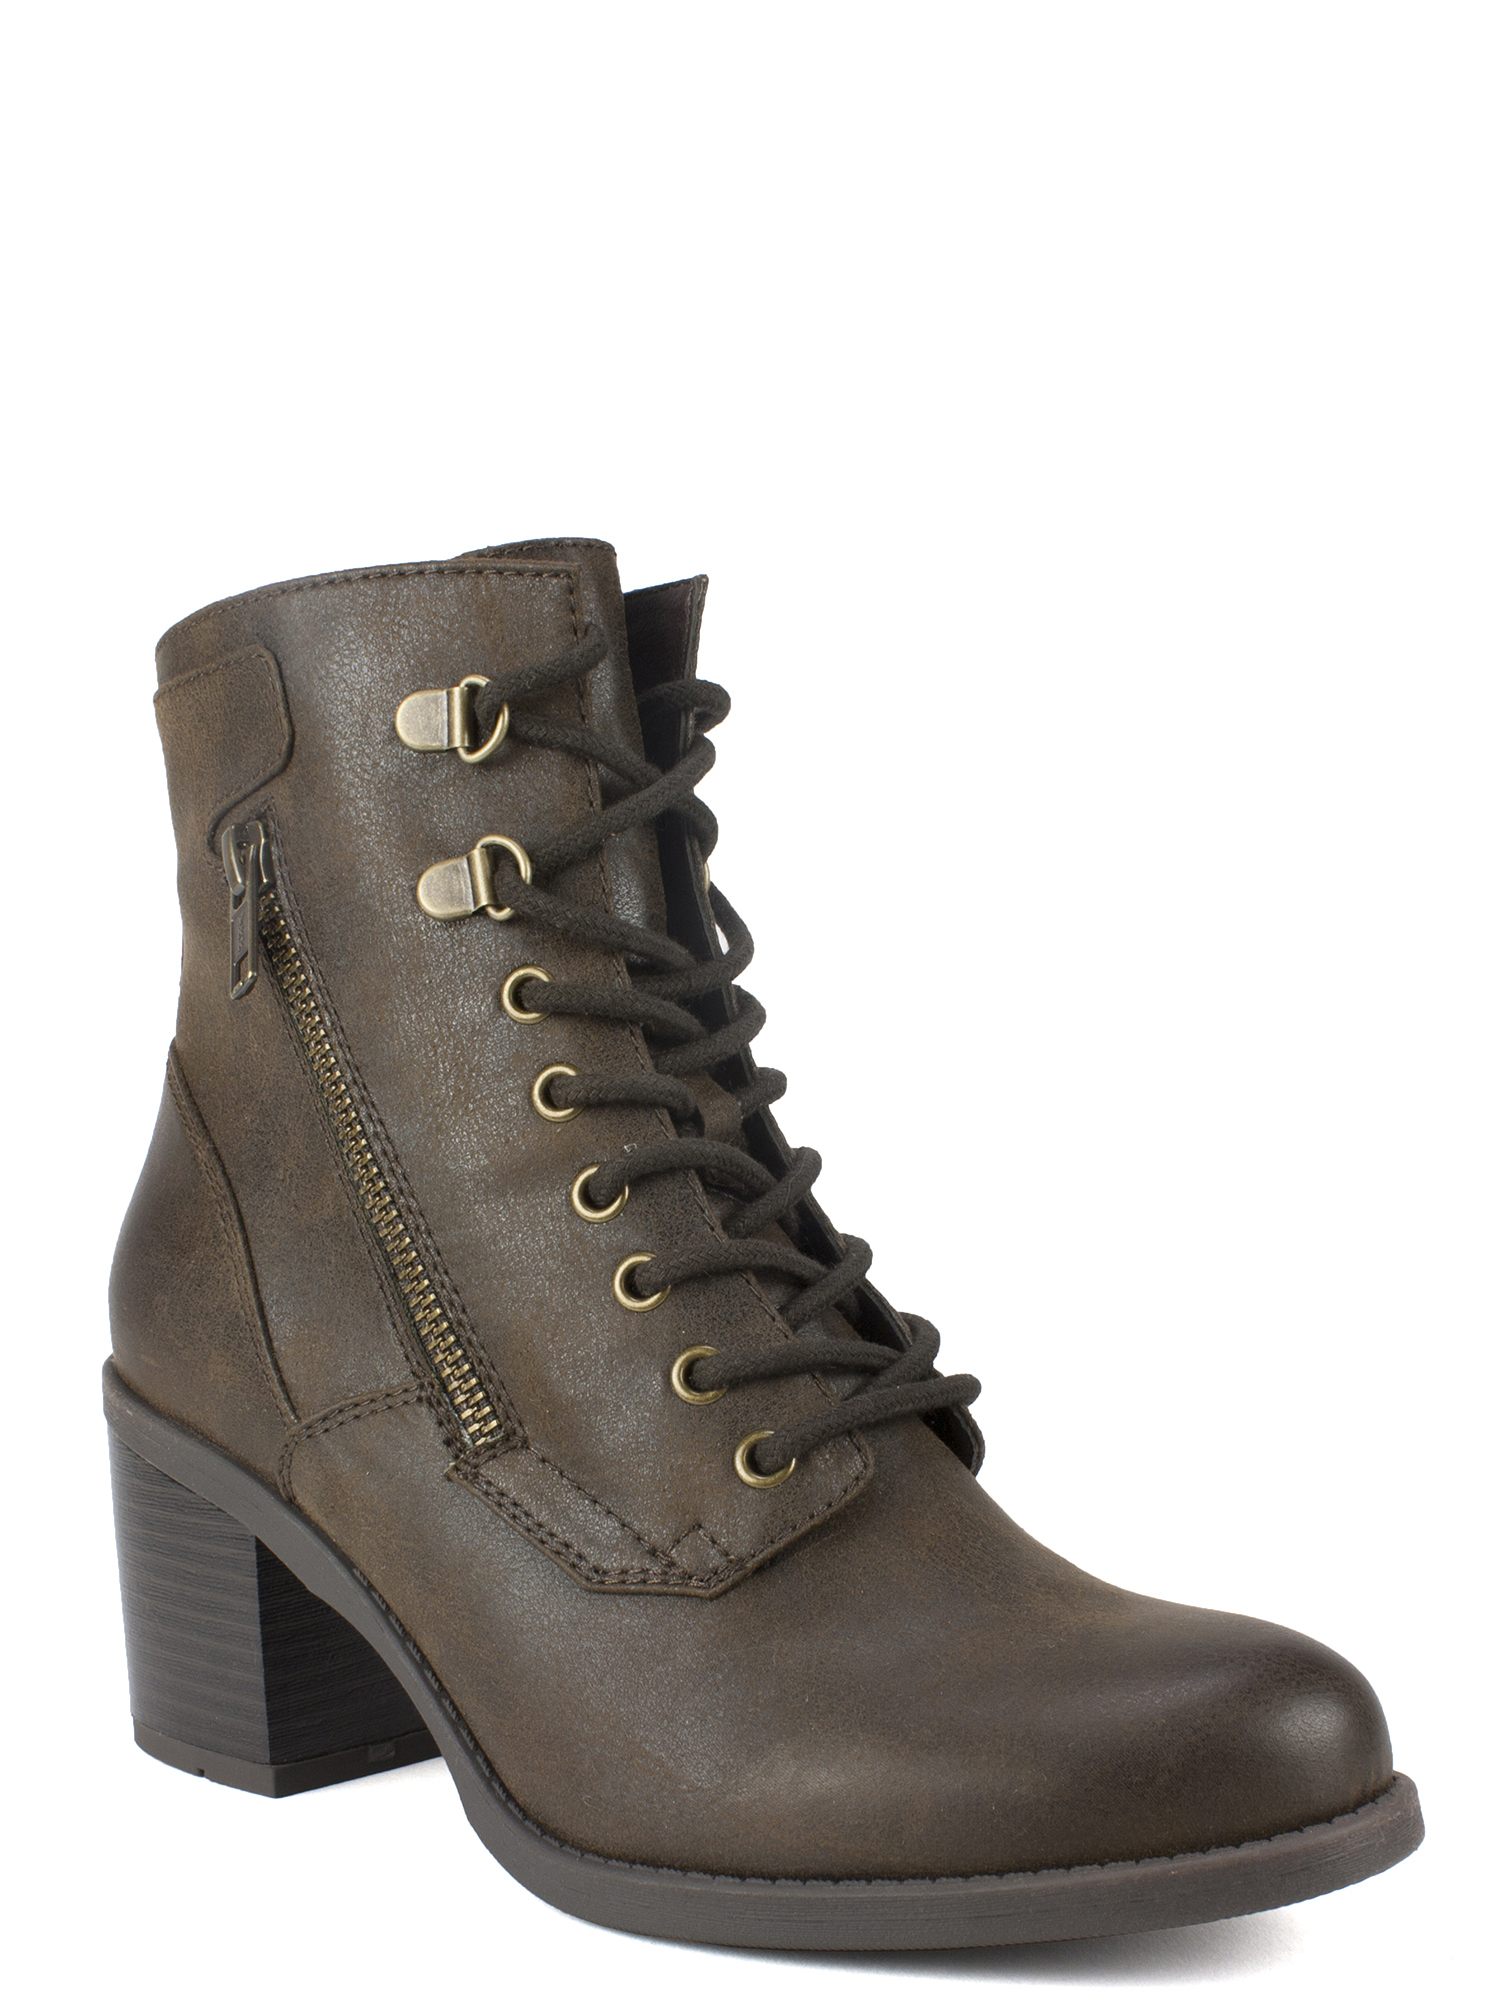 New Women Mark Maddux Travis-18 Leatherette Lace Up Sweater All Weather Bootie